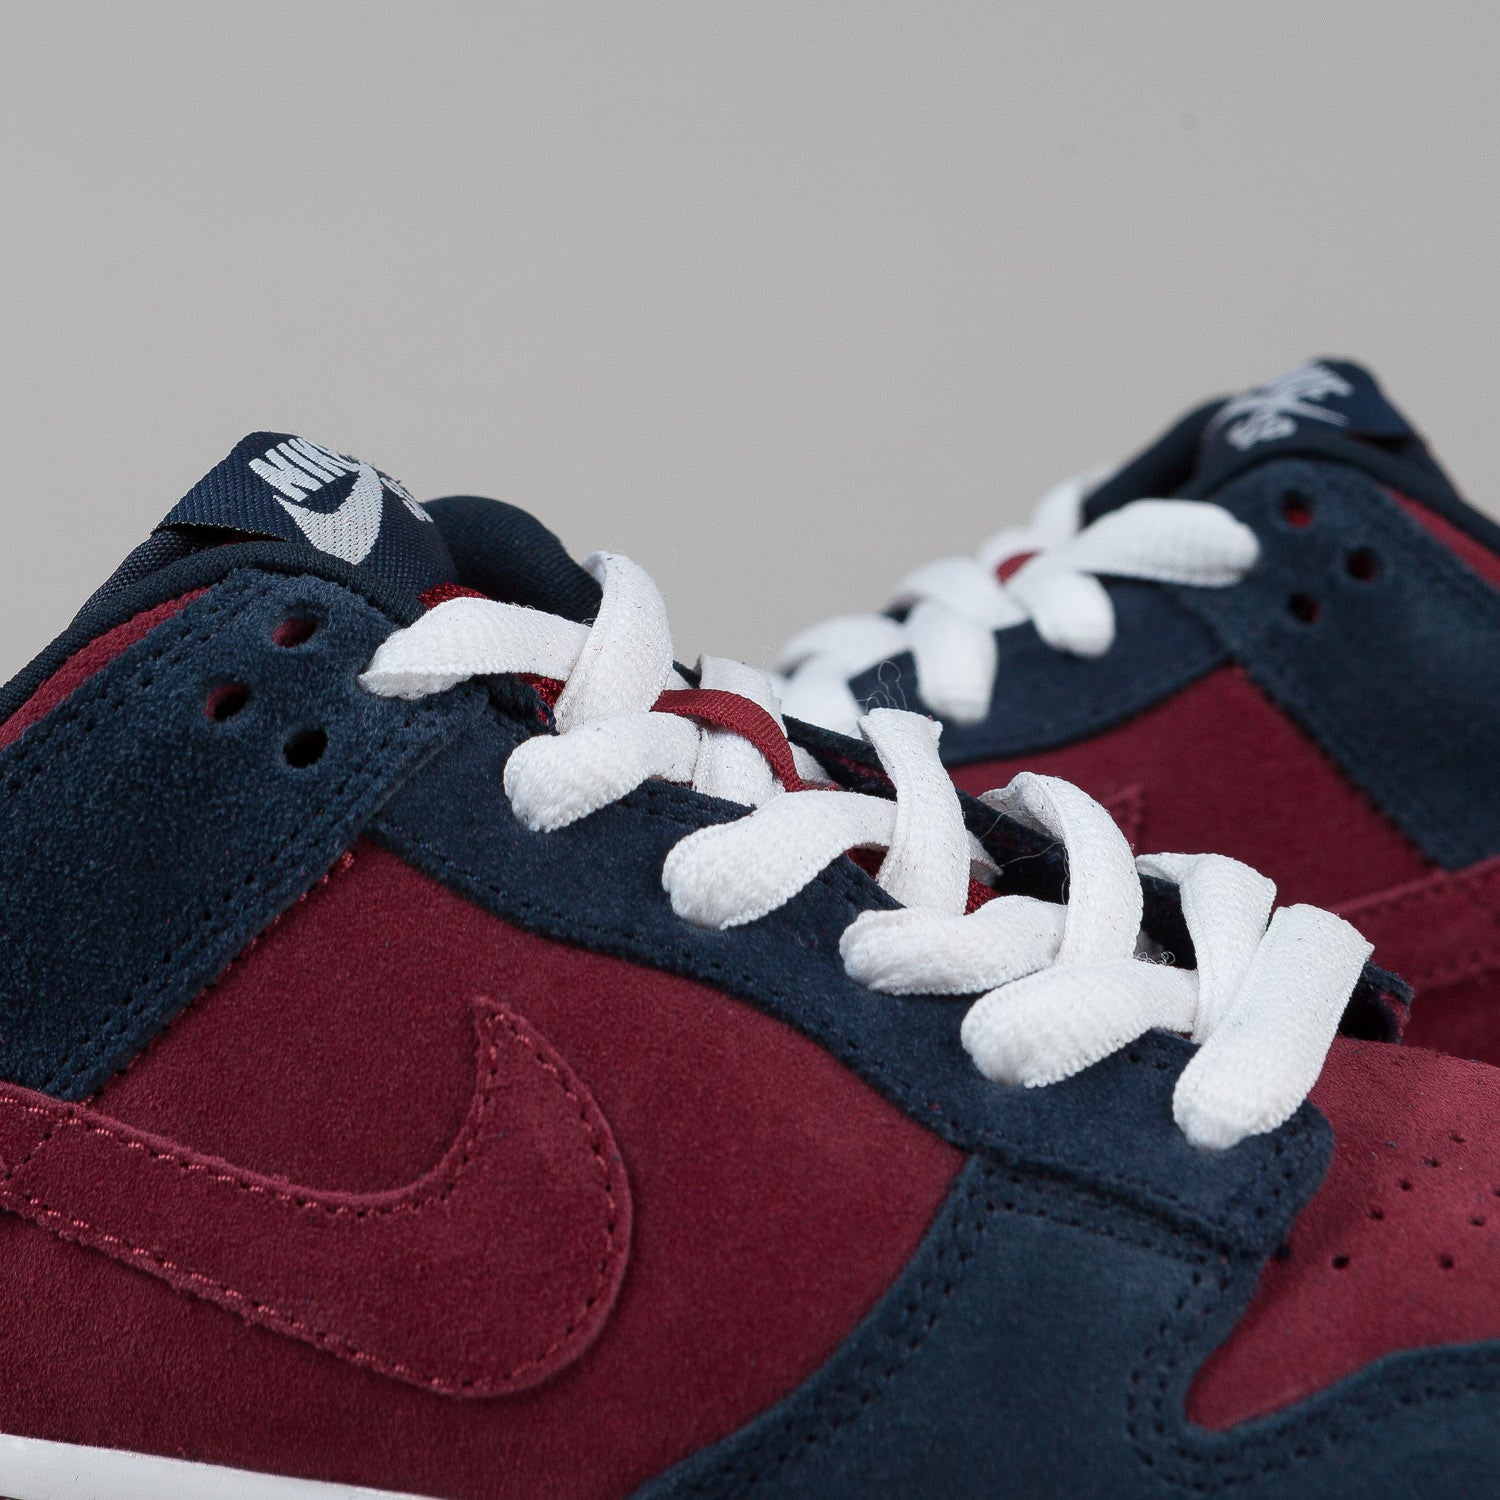 Nike SB Dunk Low Pro Shoes - Obsidian / Team Red